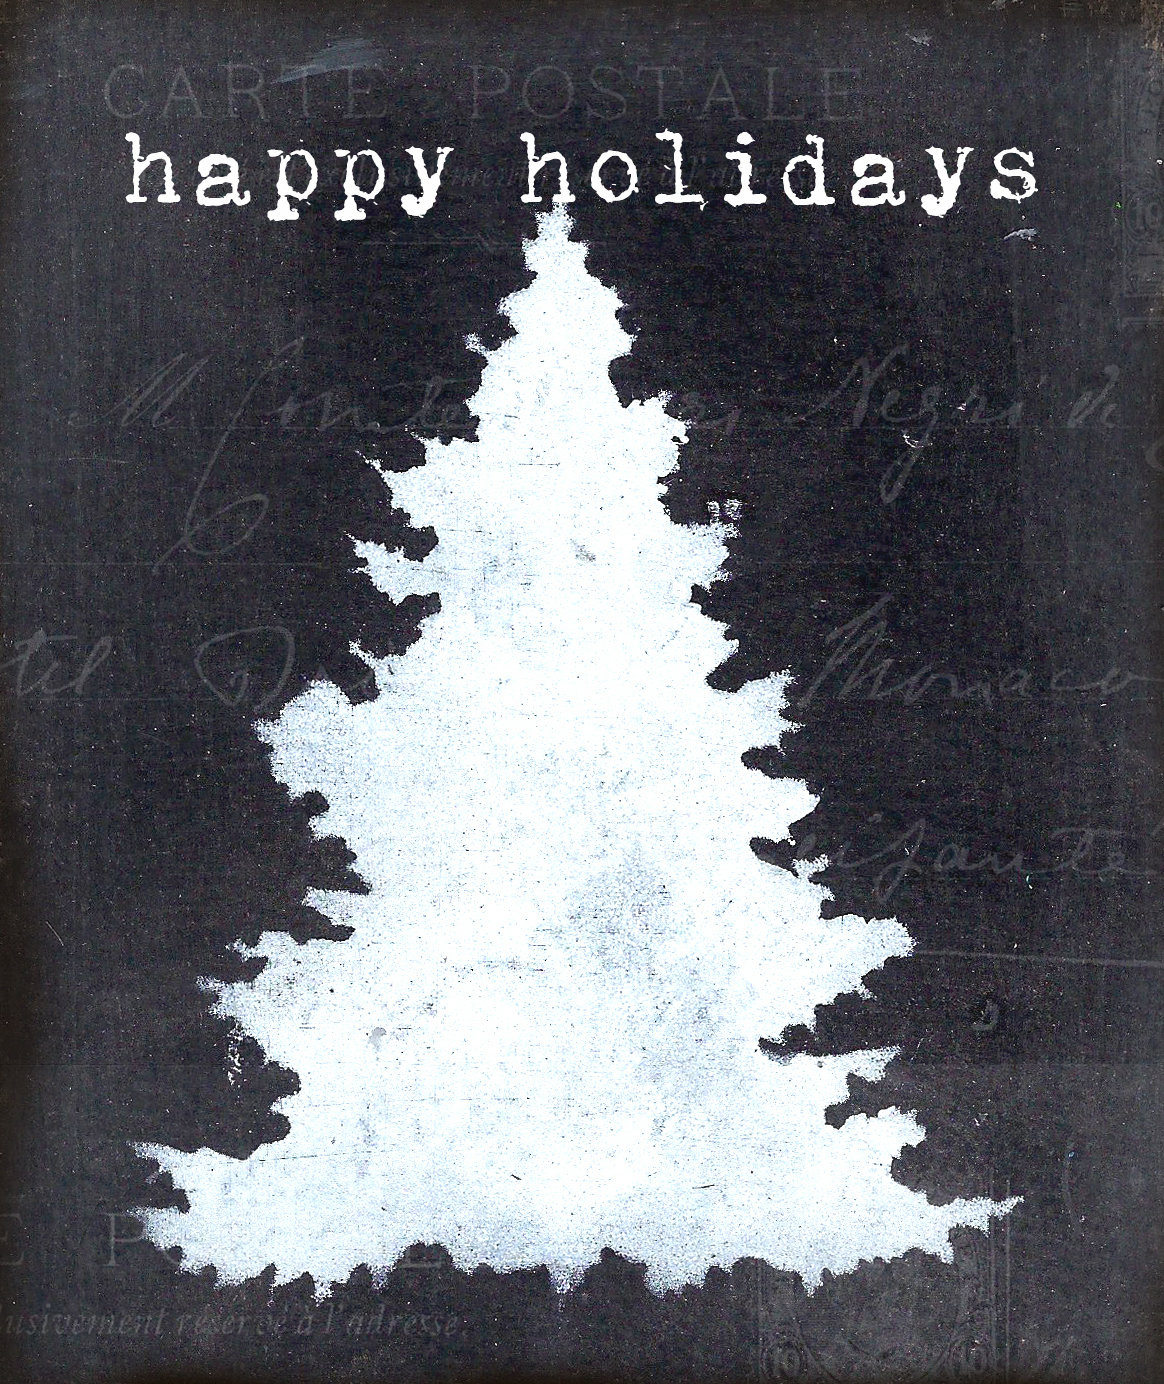 Black and White Happy Holidays Christmas tree 4x6 print on wood